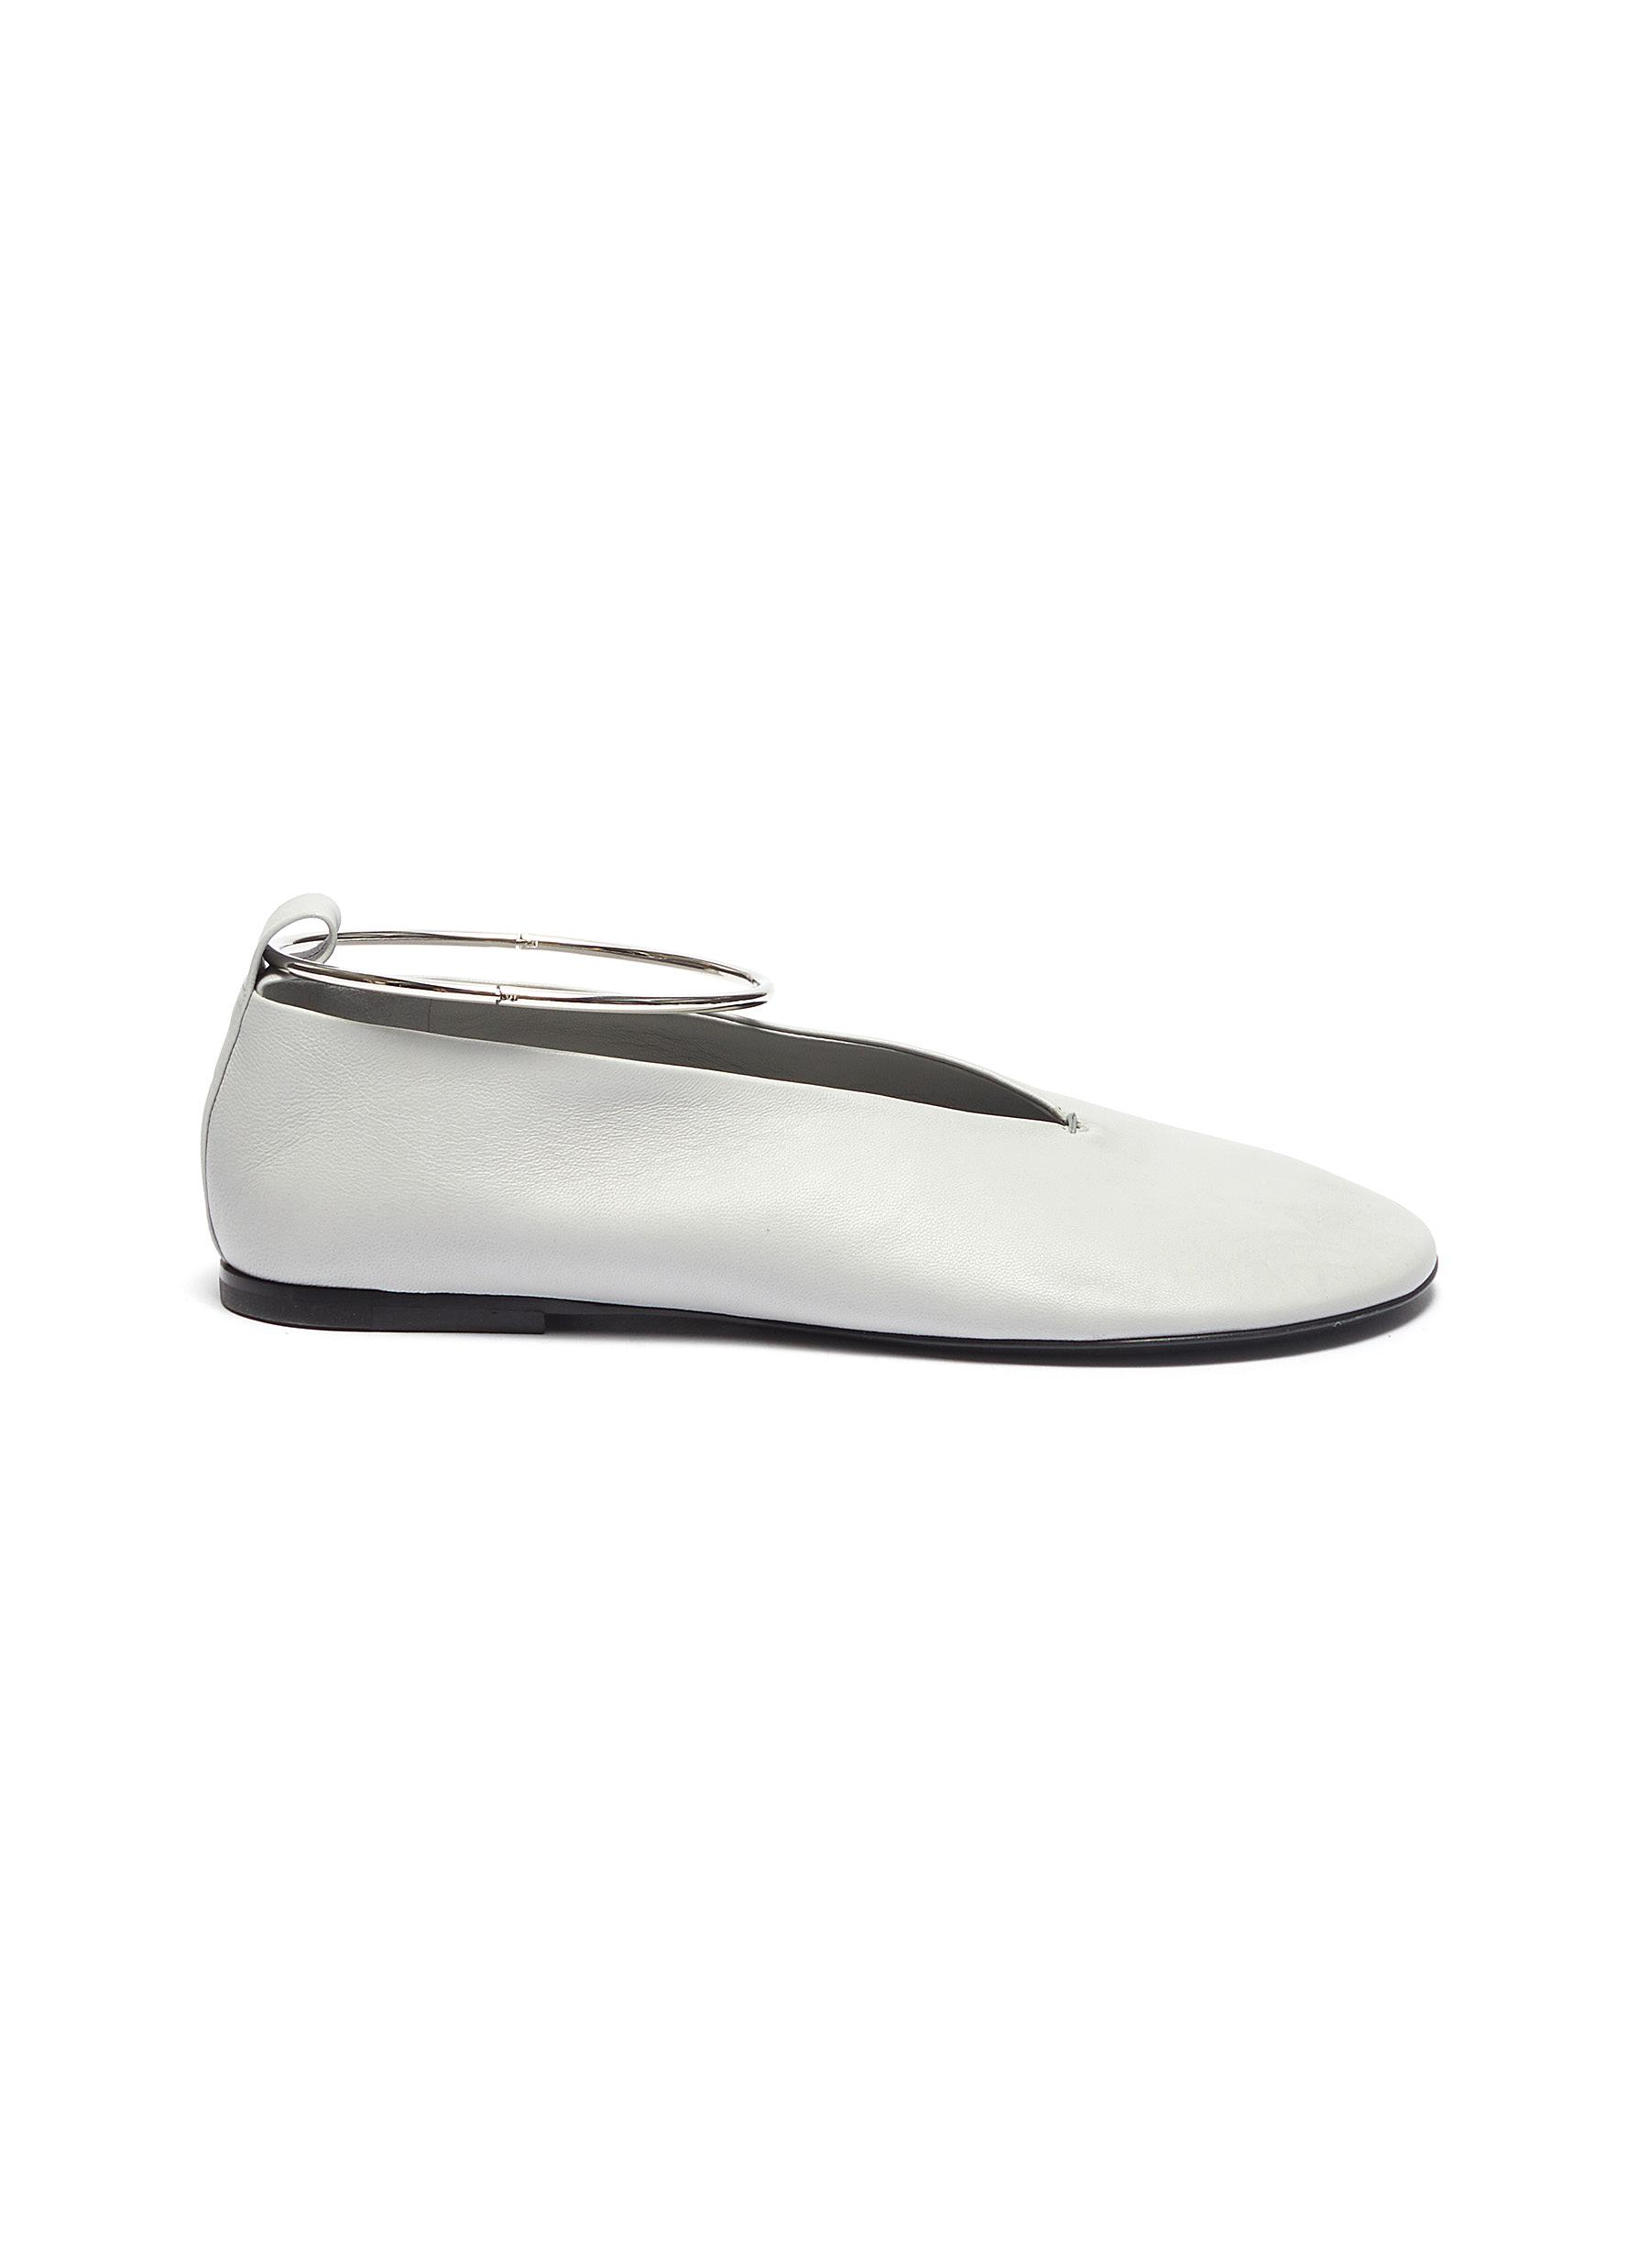 Ankle cuff leather ballet flats by Jil Sander